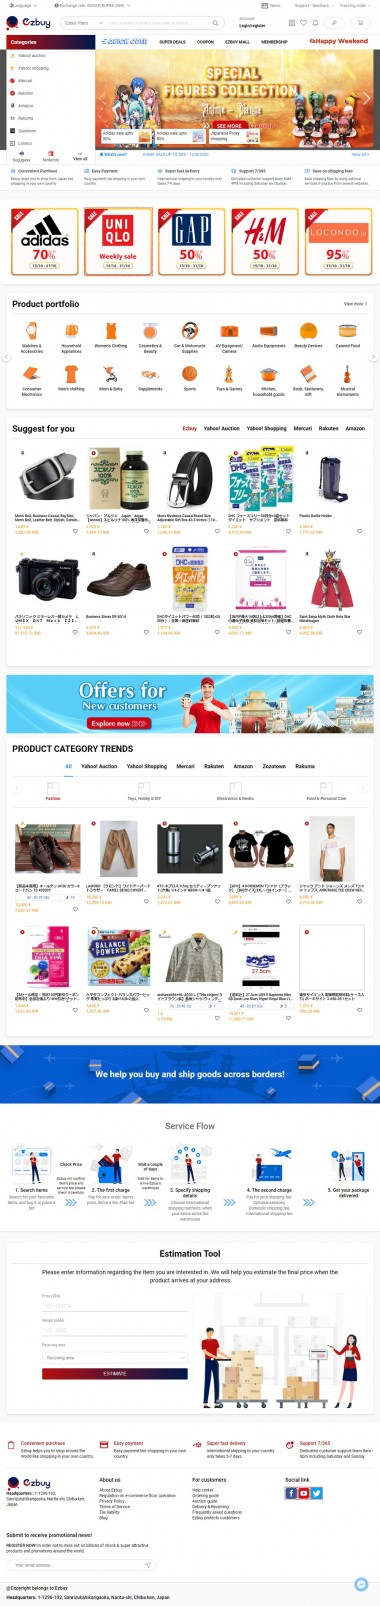 We provides the official Japanese goods purchase service, buying goods on Amazon, Rakuten, Mercari, and Japanese Auction on Yahoo Auction. Shipping official channel, prestige, cheap price, goods as committed, ensure fast shipping to around the world only from 7 days.How to buy from japan online, Purchase from japan, Shopping mall japan proxy, Buy japanese goods online, Buy japanese goods, Buy japanese product online, Buy japanese items online, Buy japanese items and Buy used japanese items.   https://ezbuy.jp/   #orderfromjapan #howtobuyfromjapan #buyjapaneseproductsonline #bestproxyshoppingjapan #japaneseproxybuyingservice #Buyingfromjapanshiptousa #PurchasingJapaneseproduct #howtobuyproductfromjapan #proxyshippingservicejapan #orderfromjapanonline #buyfromjapanonline #howtobuyfromjapanonline #purchasefromjapan